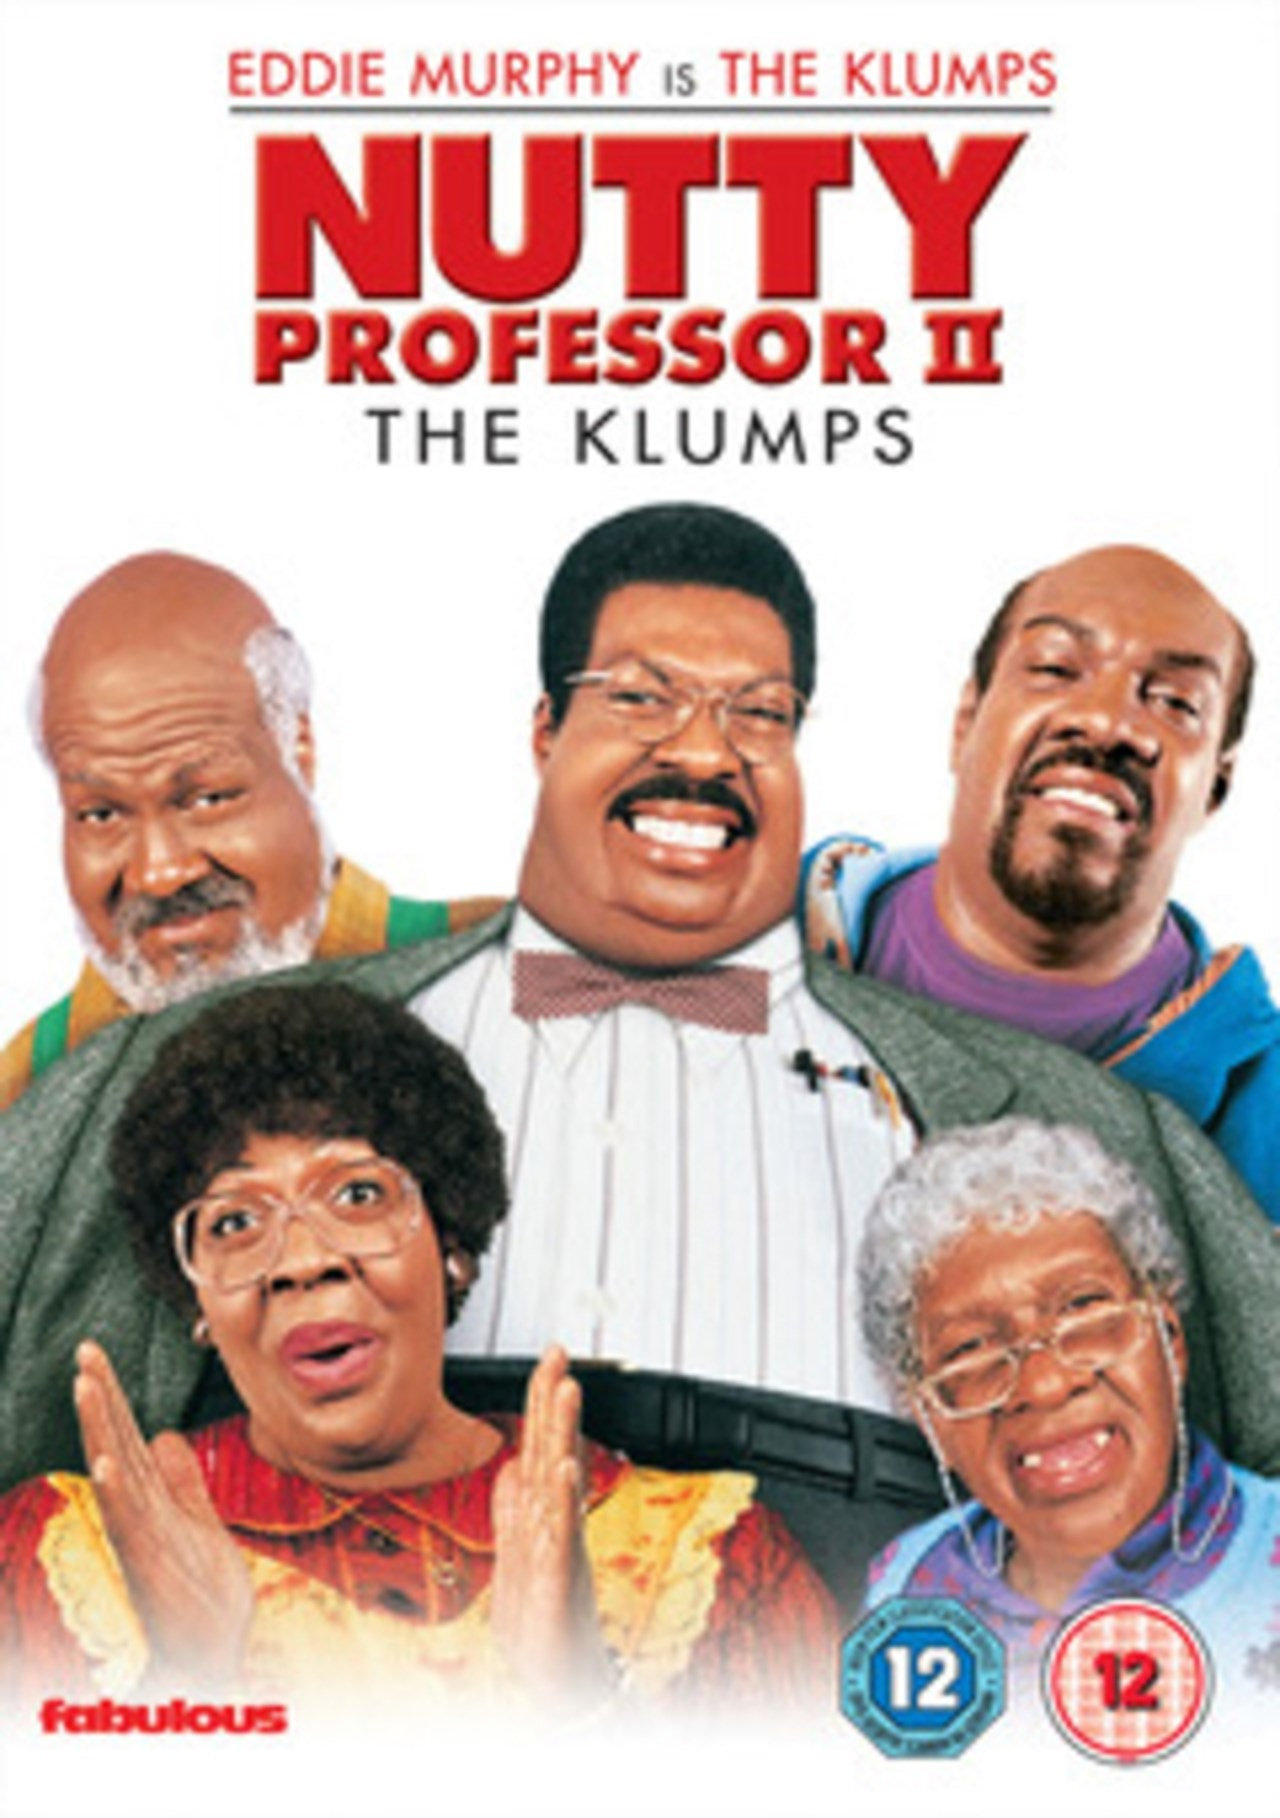 The Nutty Professor 2 - The Klumps - 1